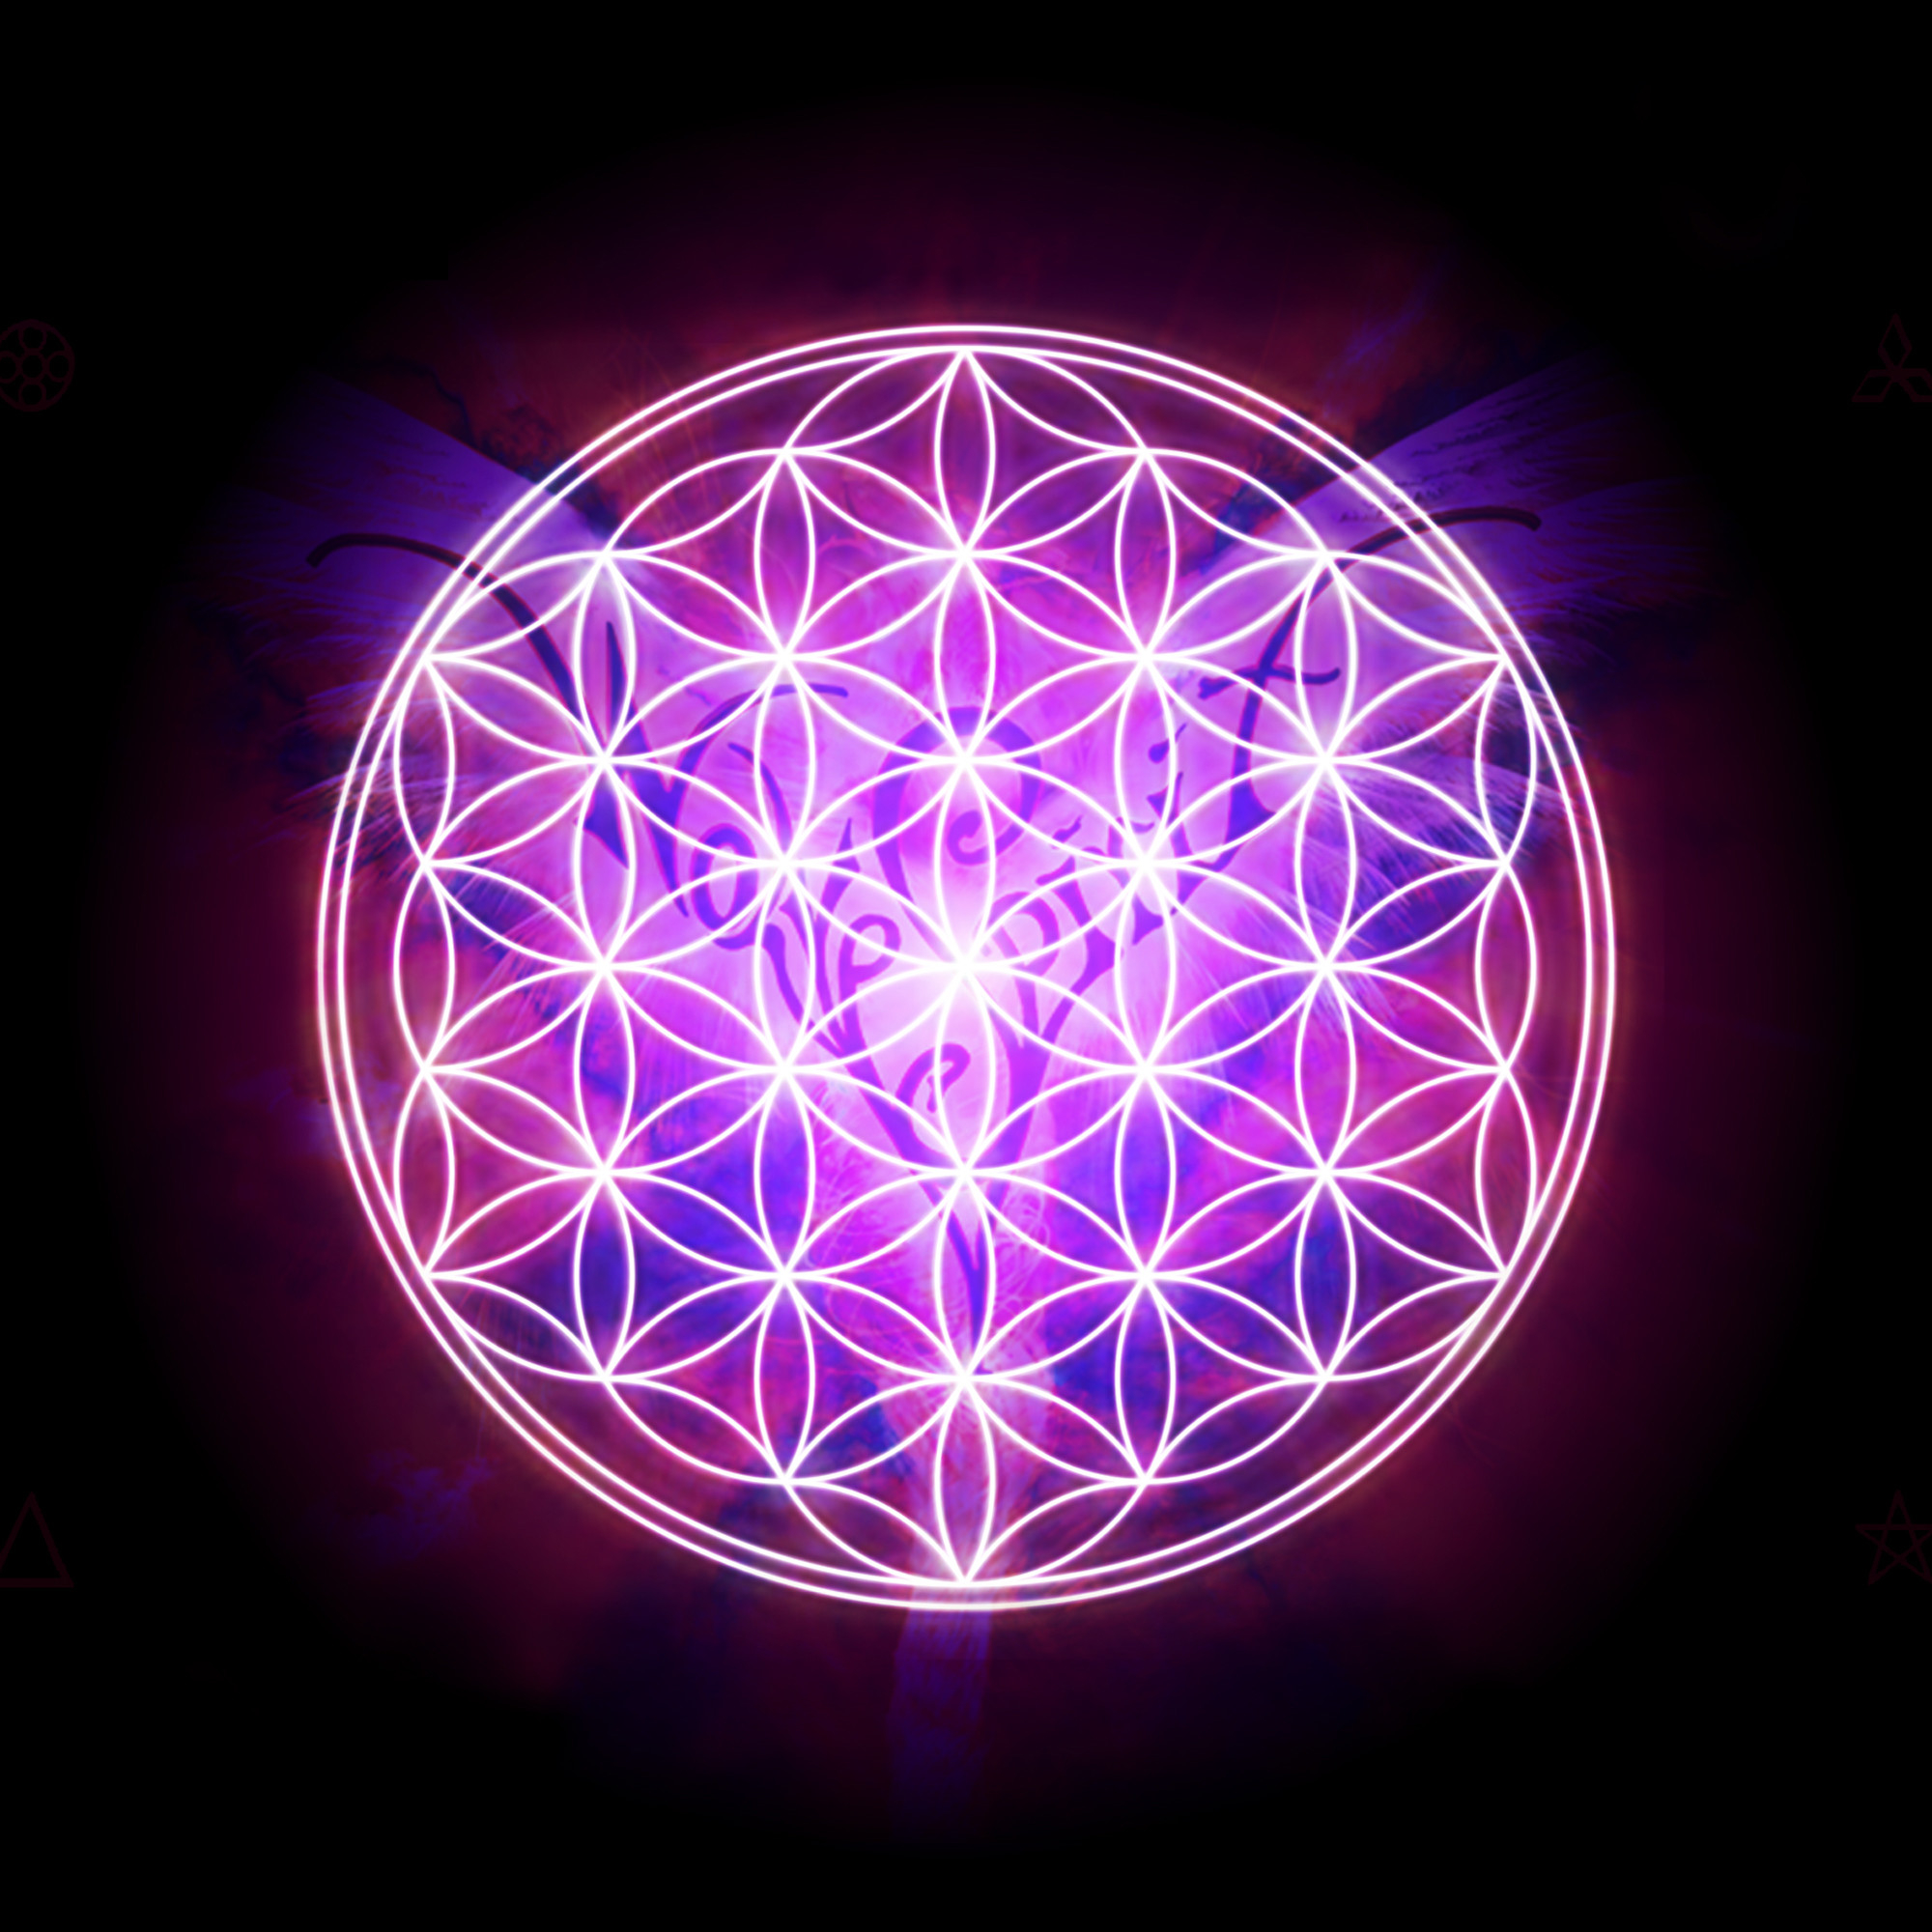 flower of life wallpapers 2000x2000 for retina